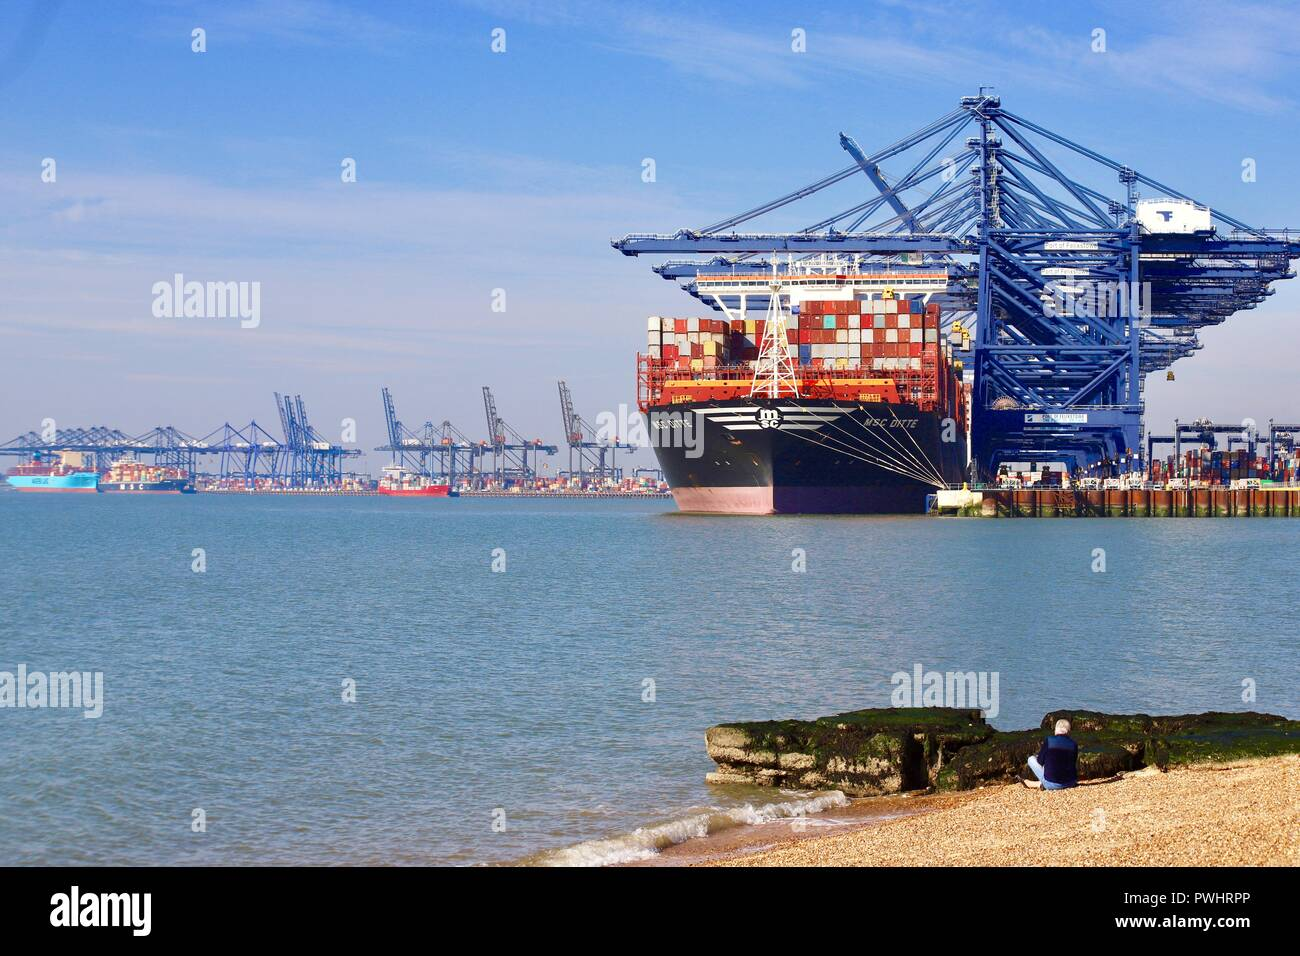 The MSC Ditte container ship docked at the Port of Felixstowe, Suffolk, UK. Sunny afternoon, October 2018. - Stock Image